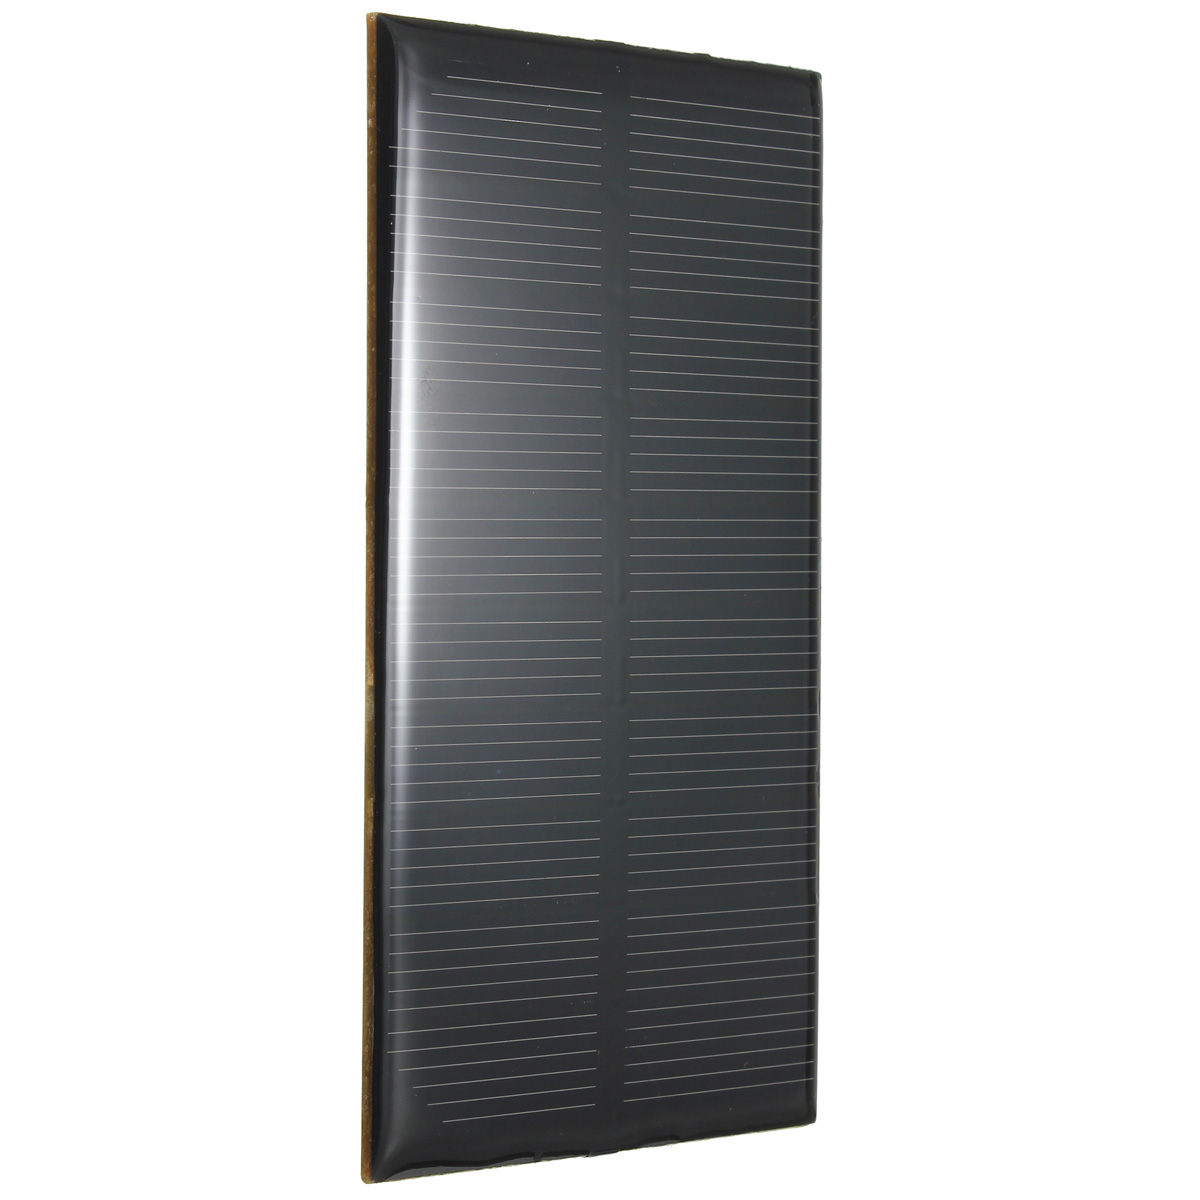 LEORY Hot Sale 5V 1W 200MAh Monocrystalline Stored Energy Power Solar Panel Module System Solar Cells Charger